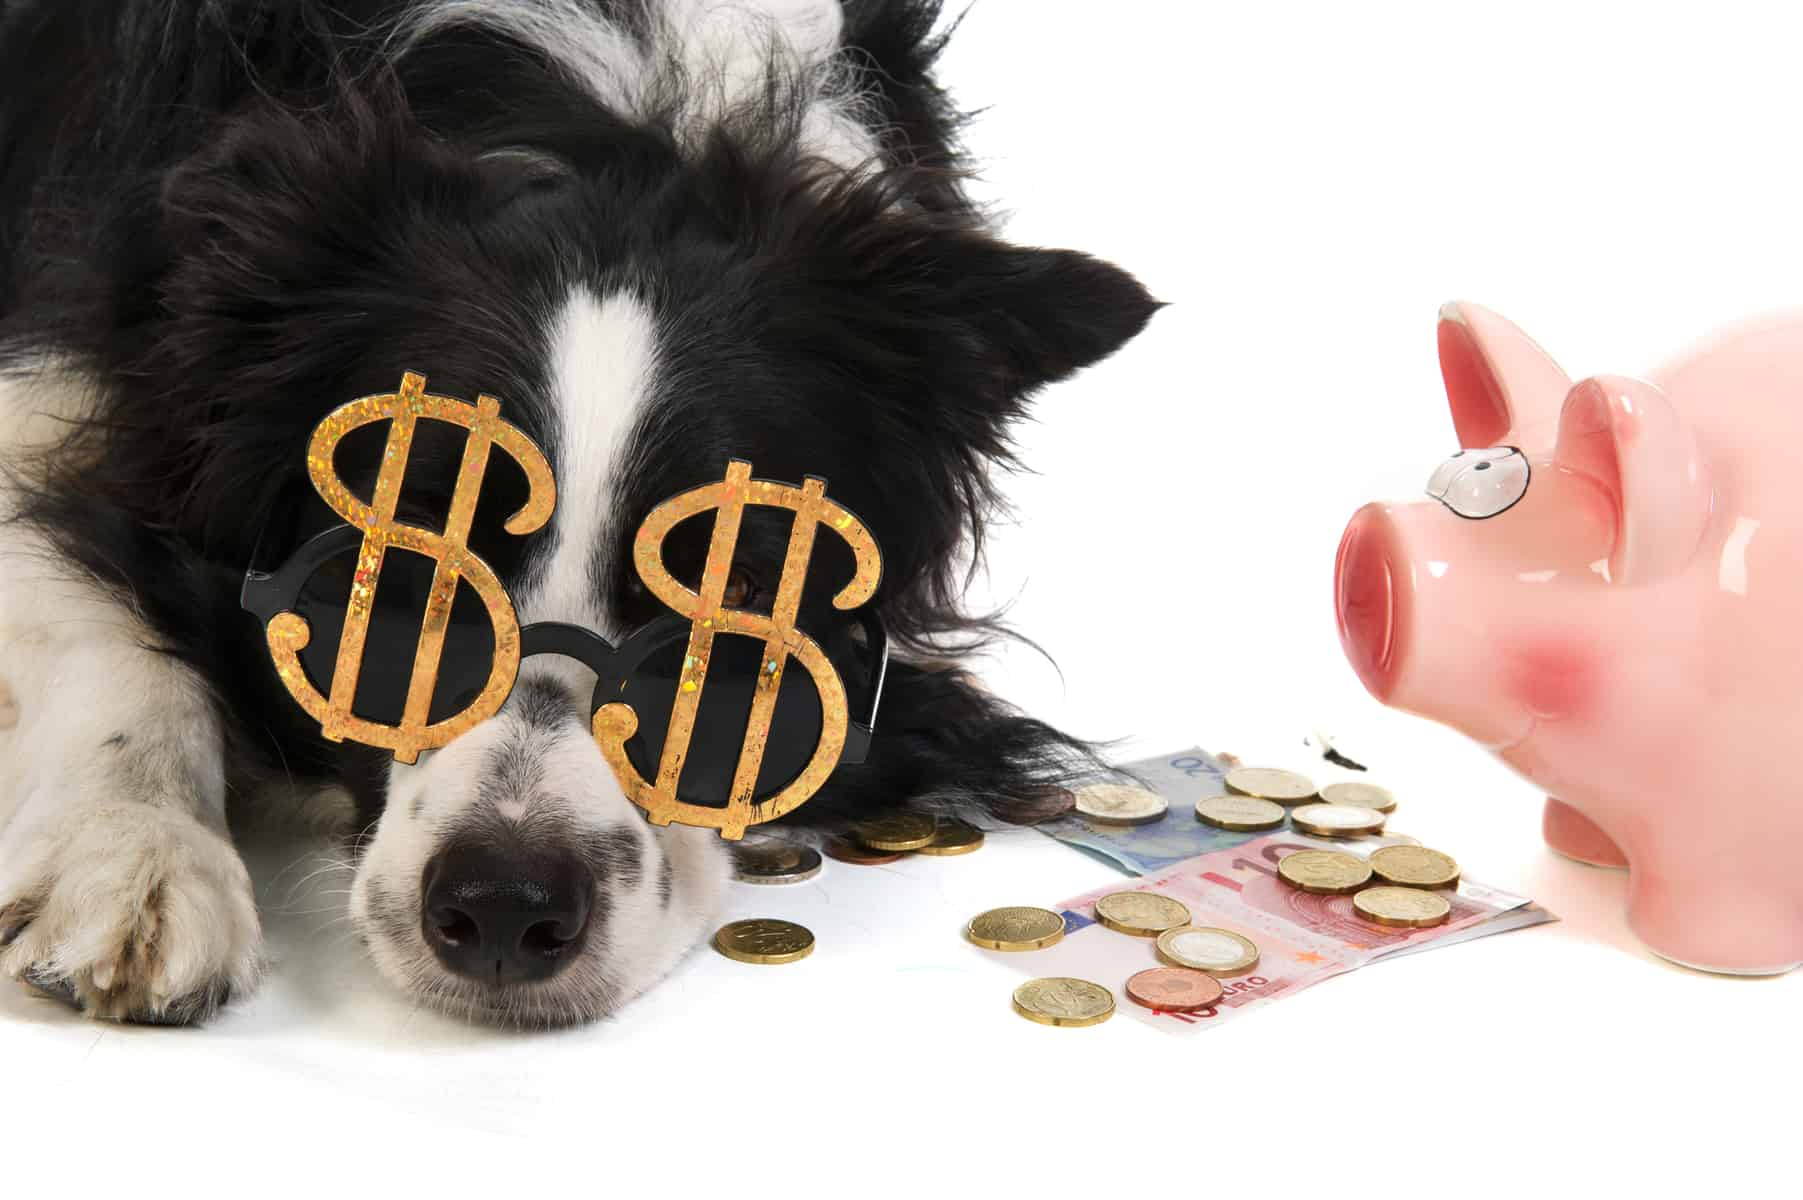 A Border Collie wearing dollar sign glasses while laying beside money and a piggy bank